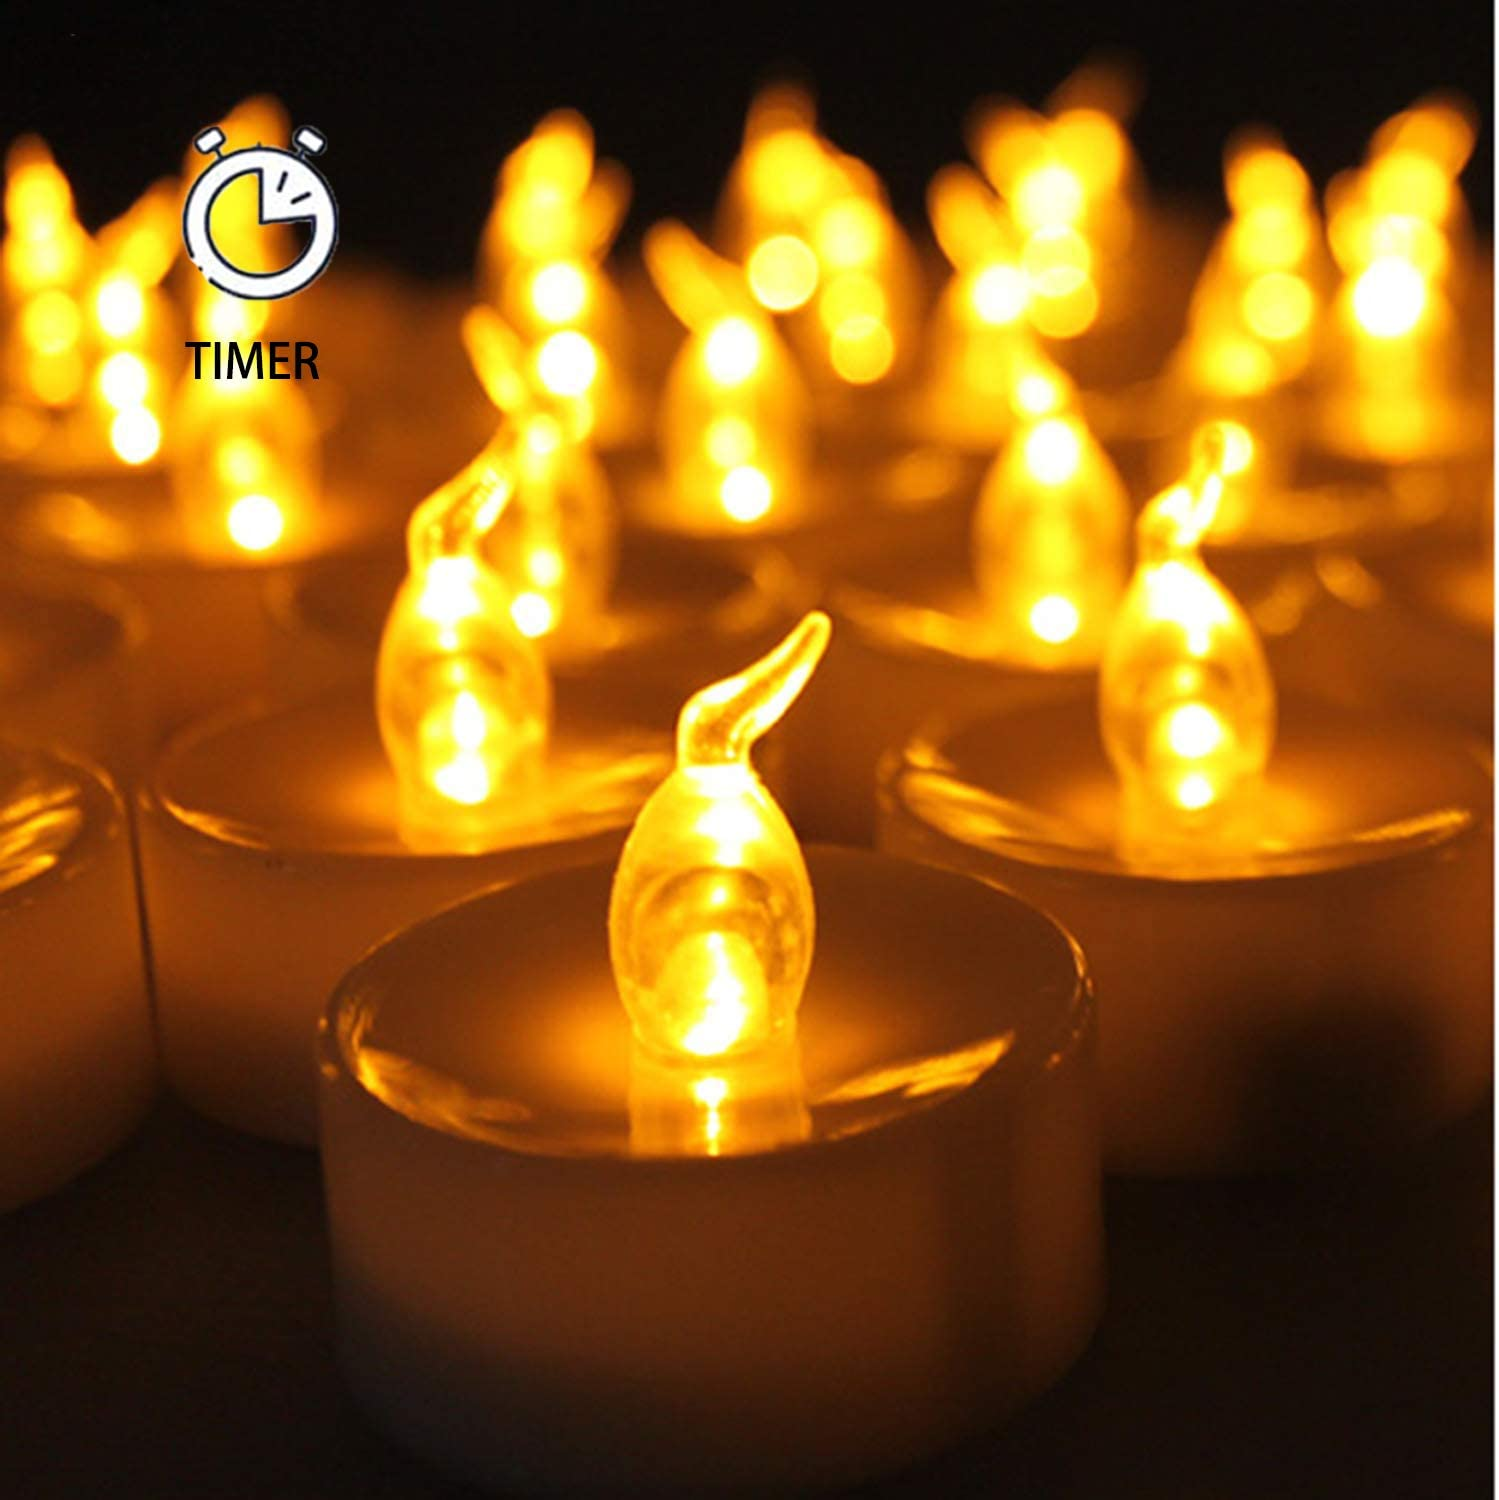 AGPtek 24 Pack Flameless Amber Yellow Wave Open Led Tea Light Candle Realistic flickering Bulb Timer 6 Hours On Seasonal Festival Celebration Electric Battery Fake Candle